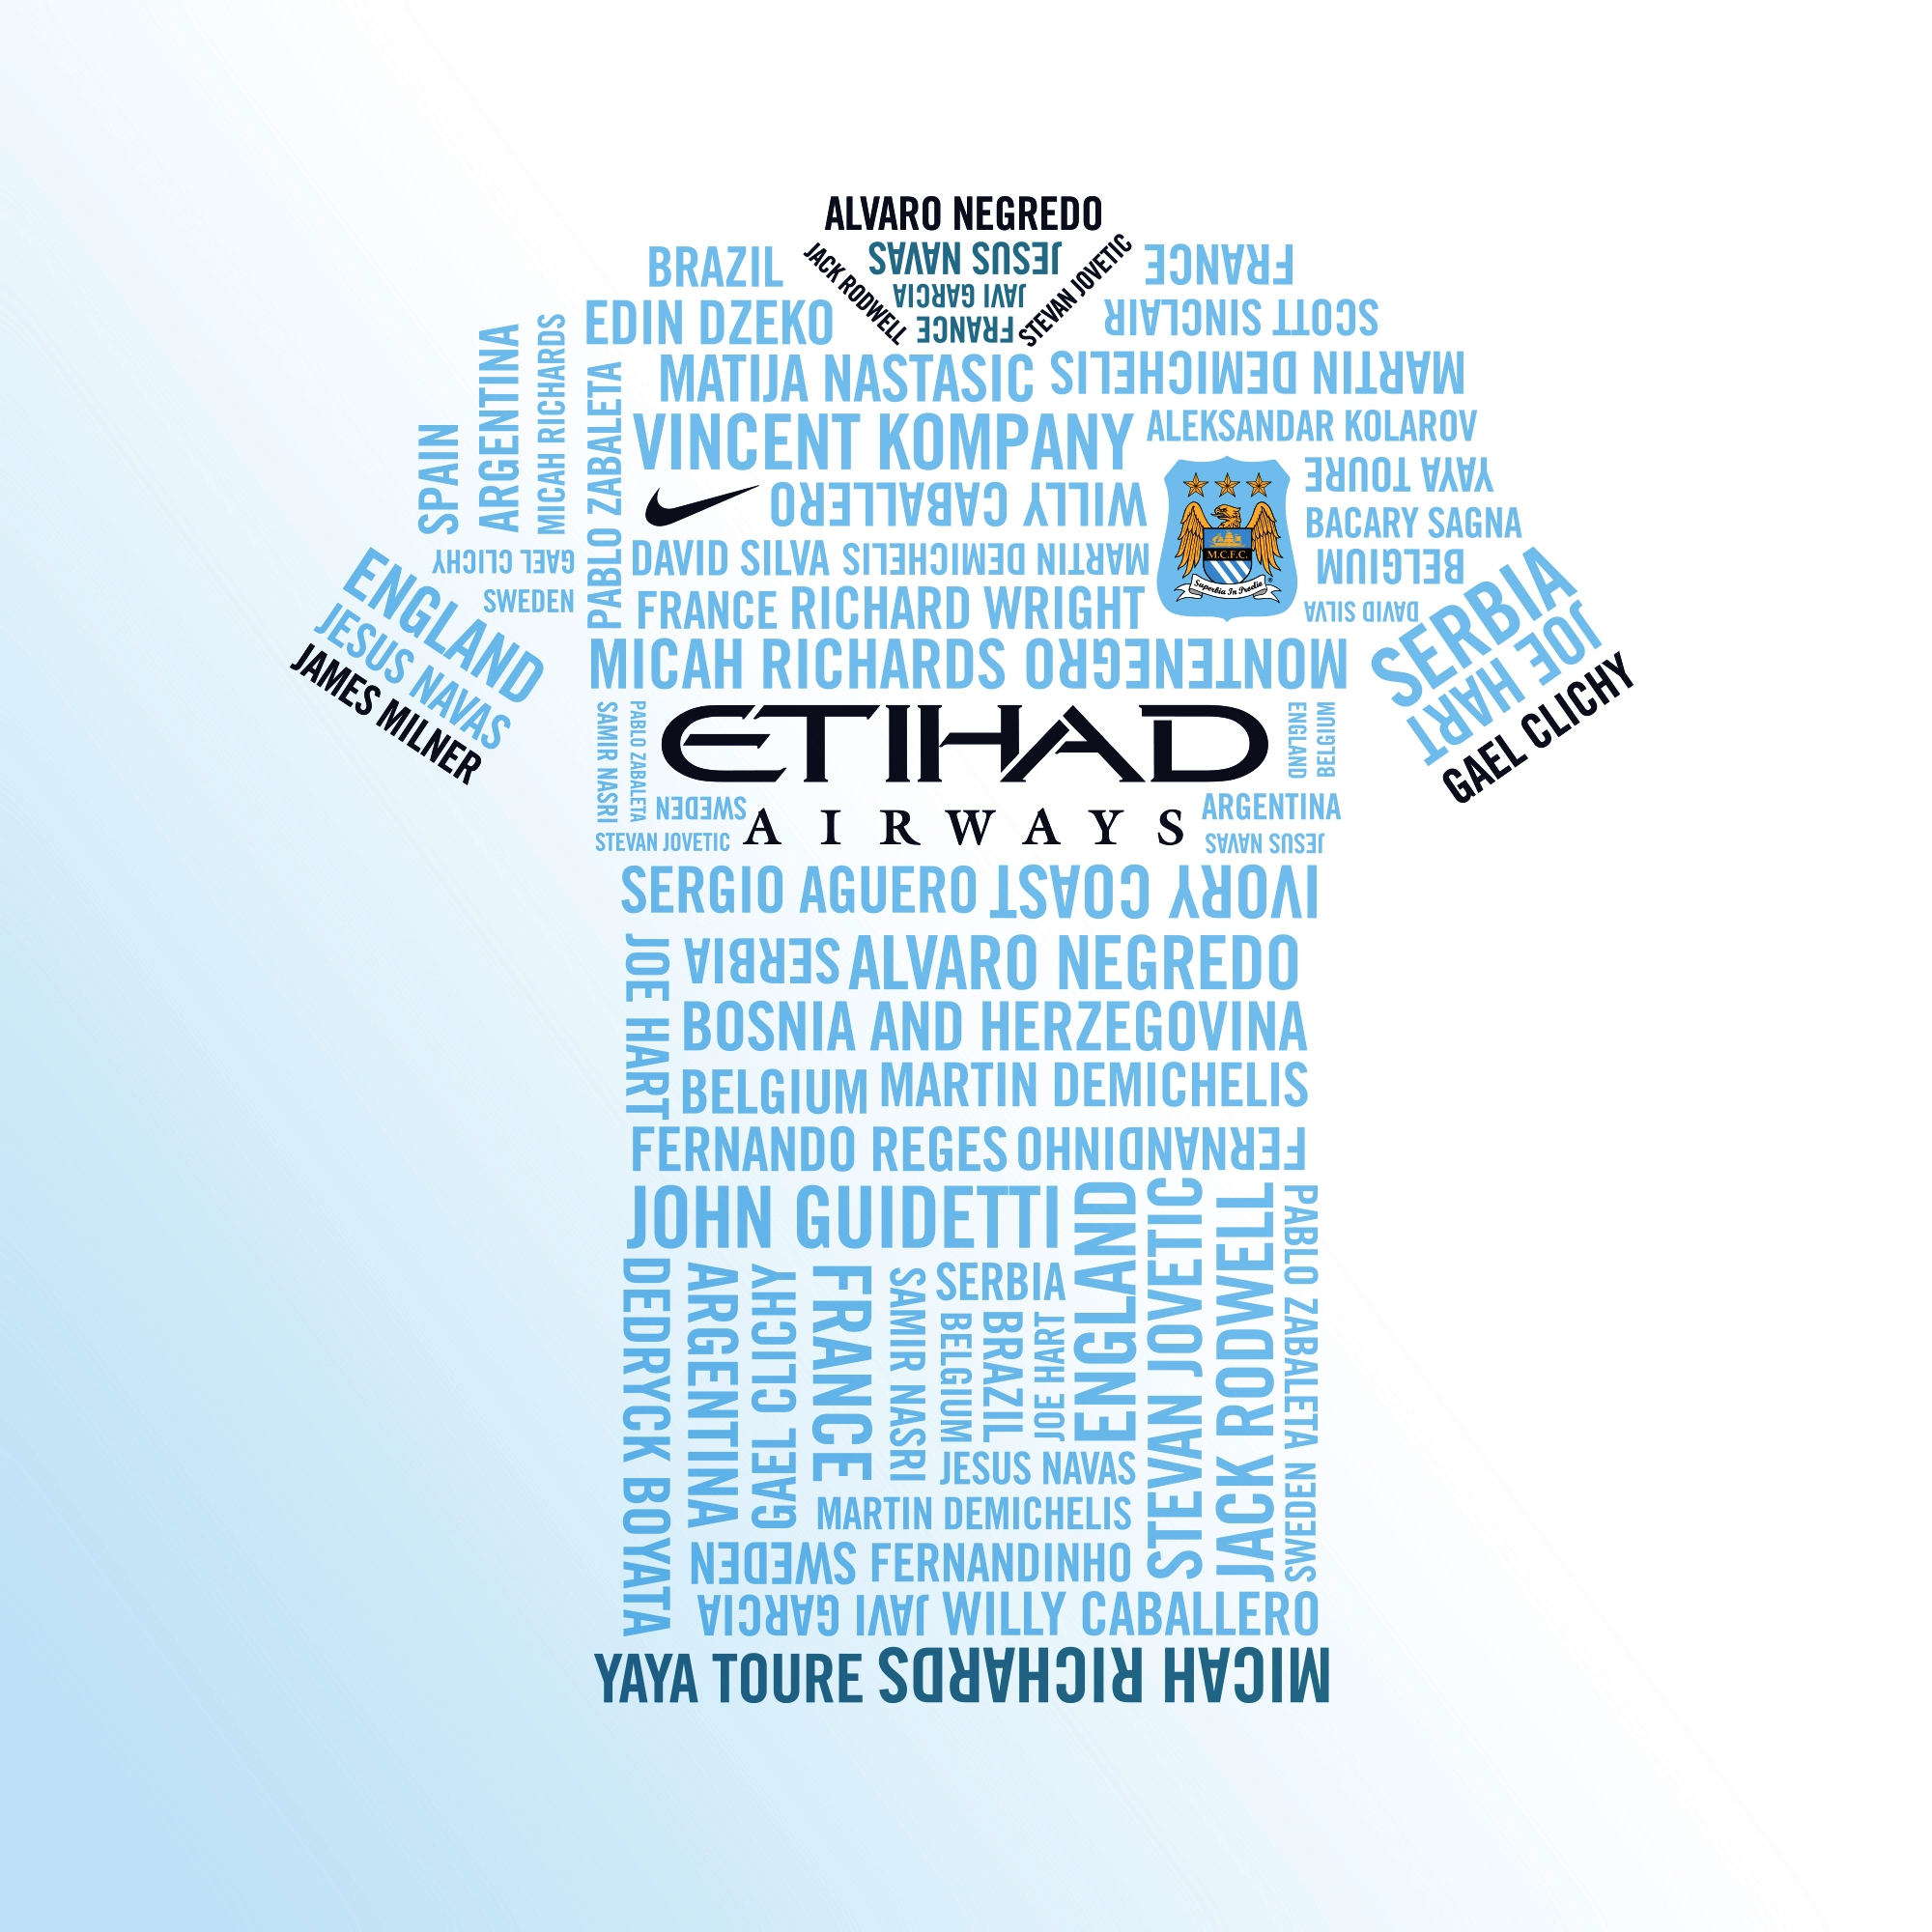 Number's game - count how many INDIVIDUAL names and countries appear on the special Eitihad Airways commissioned T-shirt and you could win a Man City boxed home shirt with Read But Never Red.